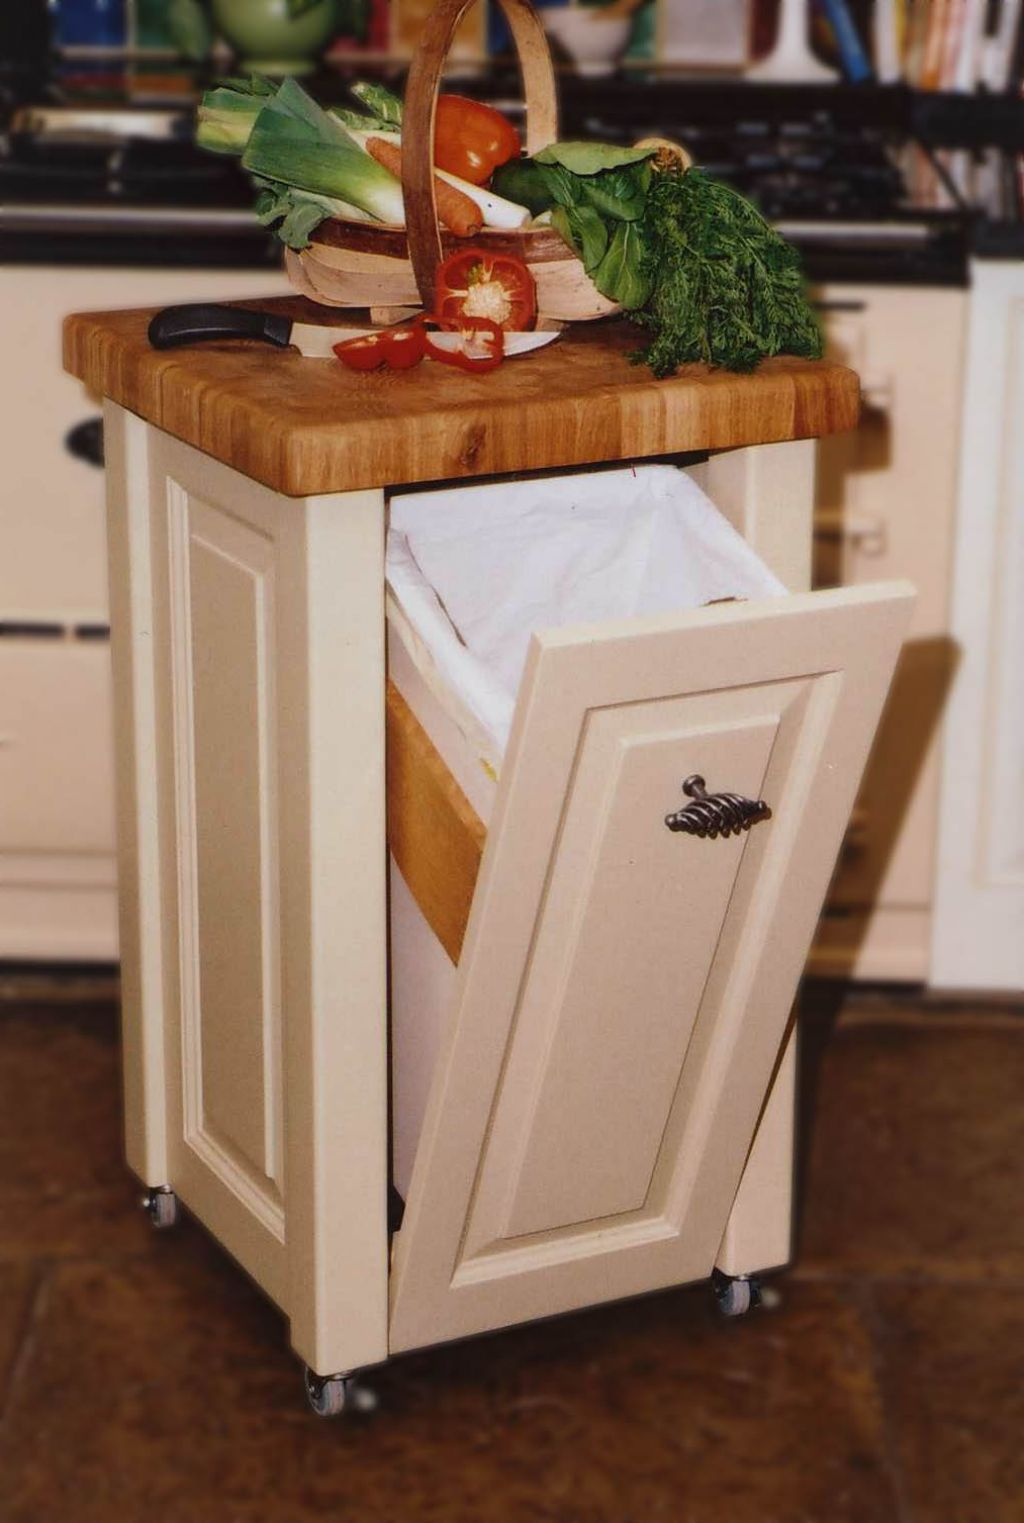 Portable kitchen island designs - Kitchen Small And Portable Kitchen Island Ideas Tiny Kitchen Island With Small Storage And